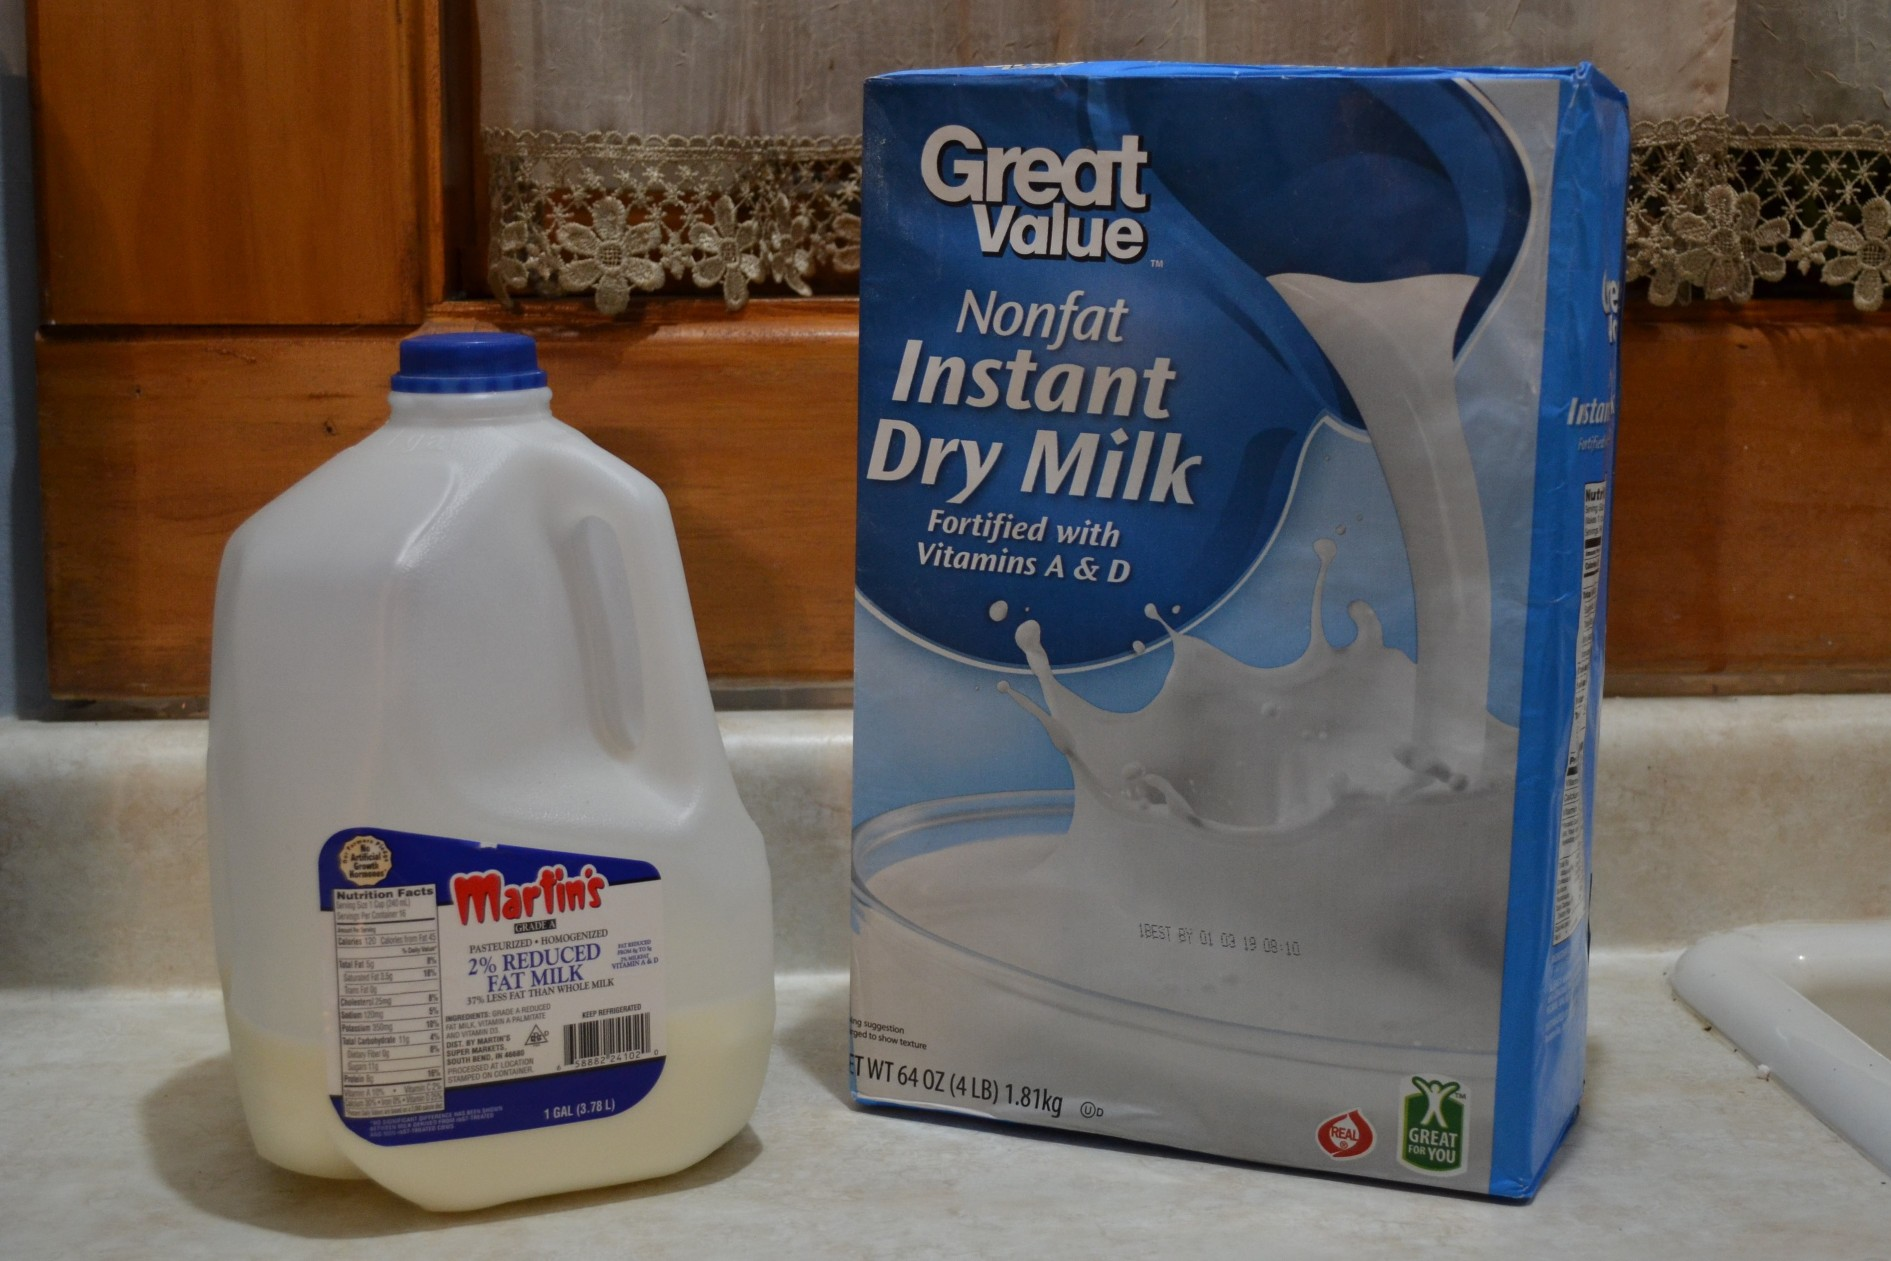 Carton of Milk and Box of Powdered Milk